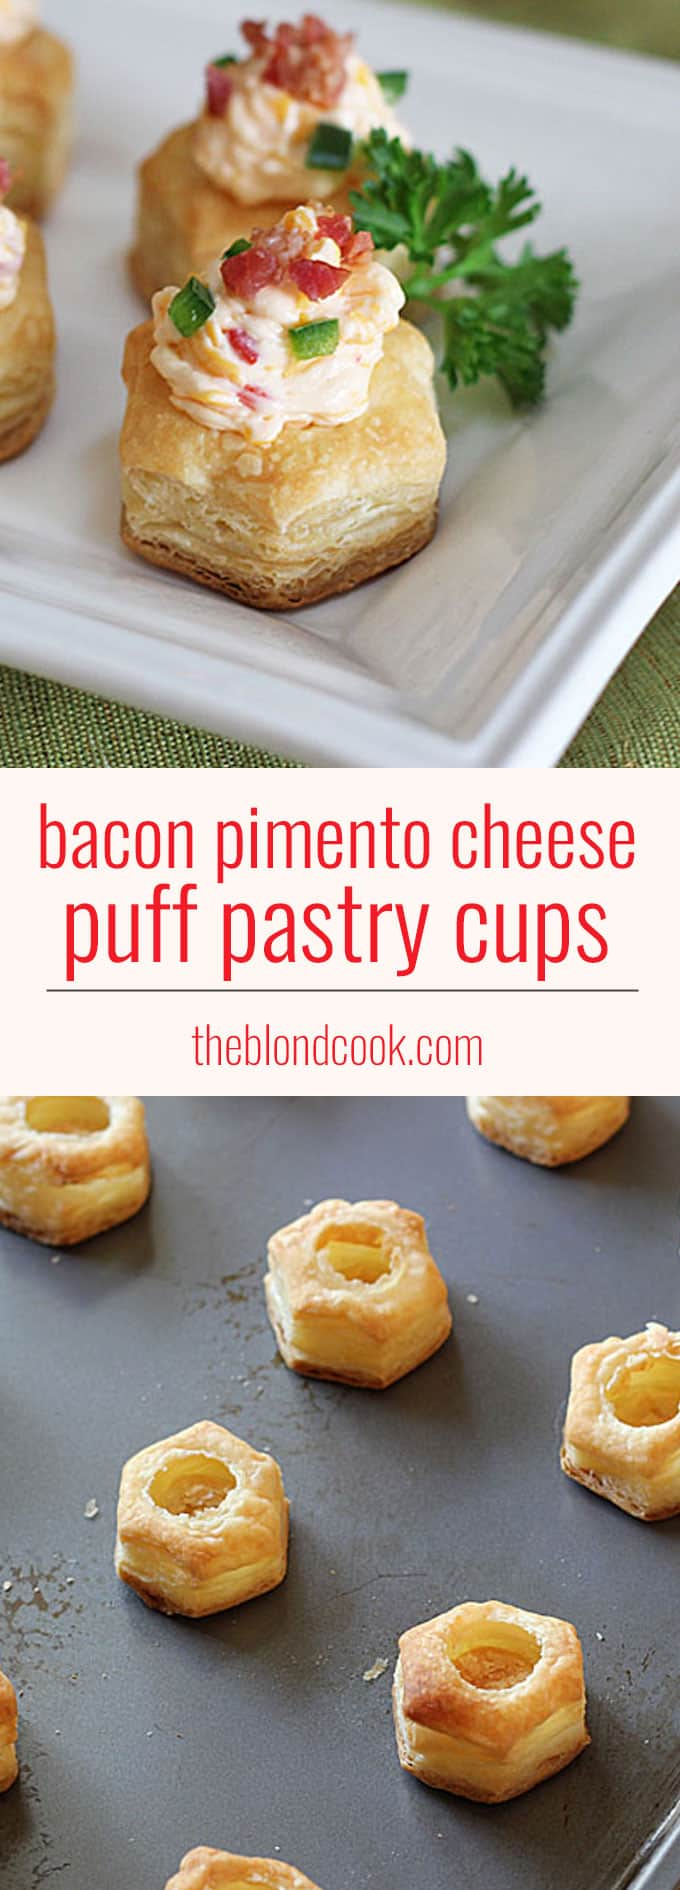 Bacon Pimento Cheese Puff Pastry Cups - Perfect for game day!